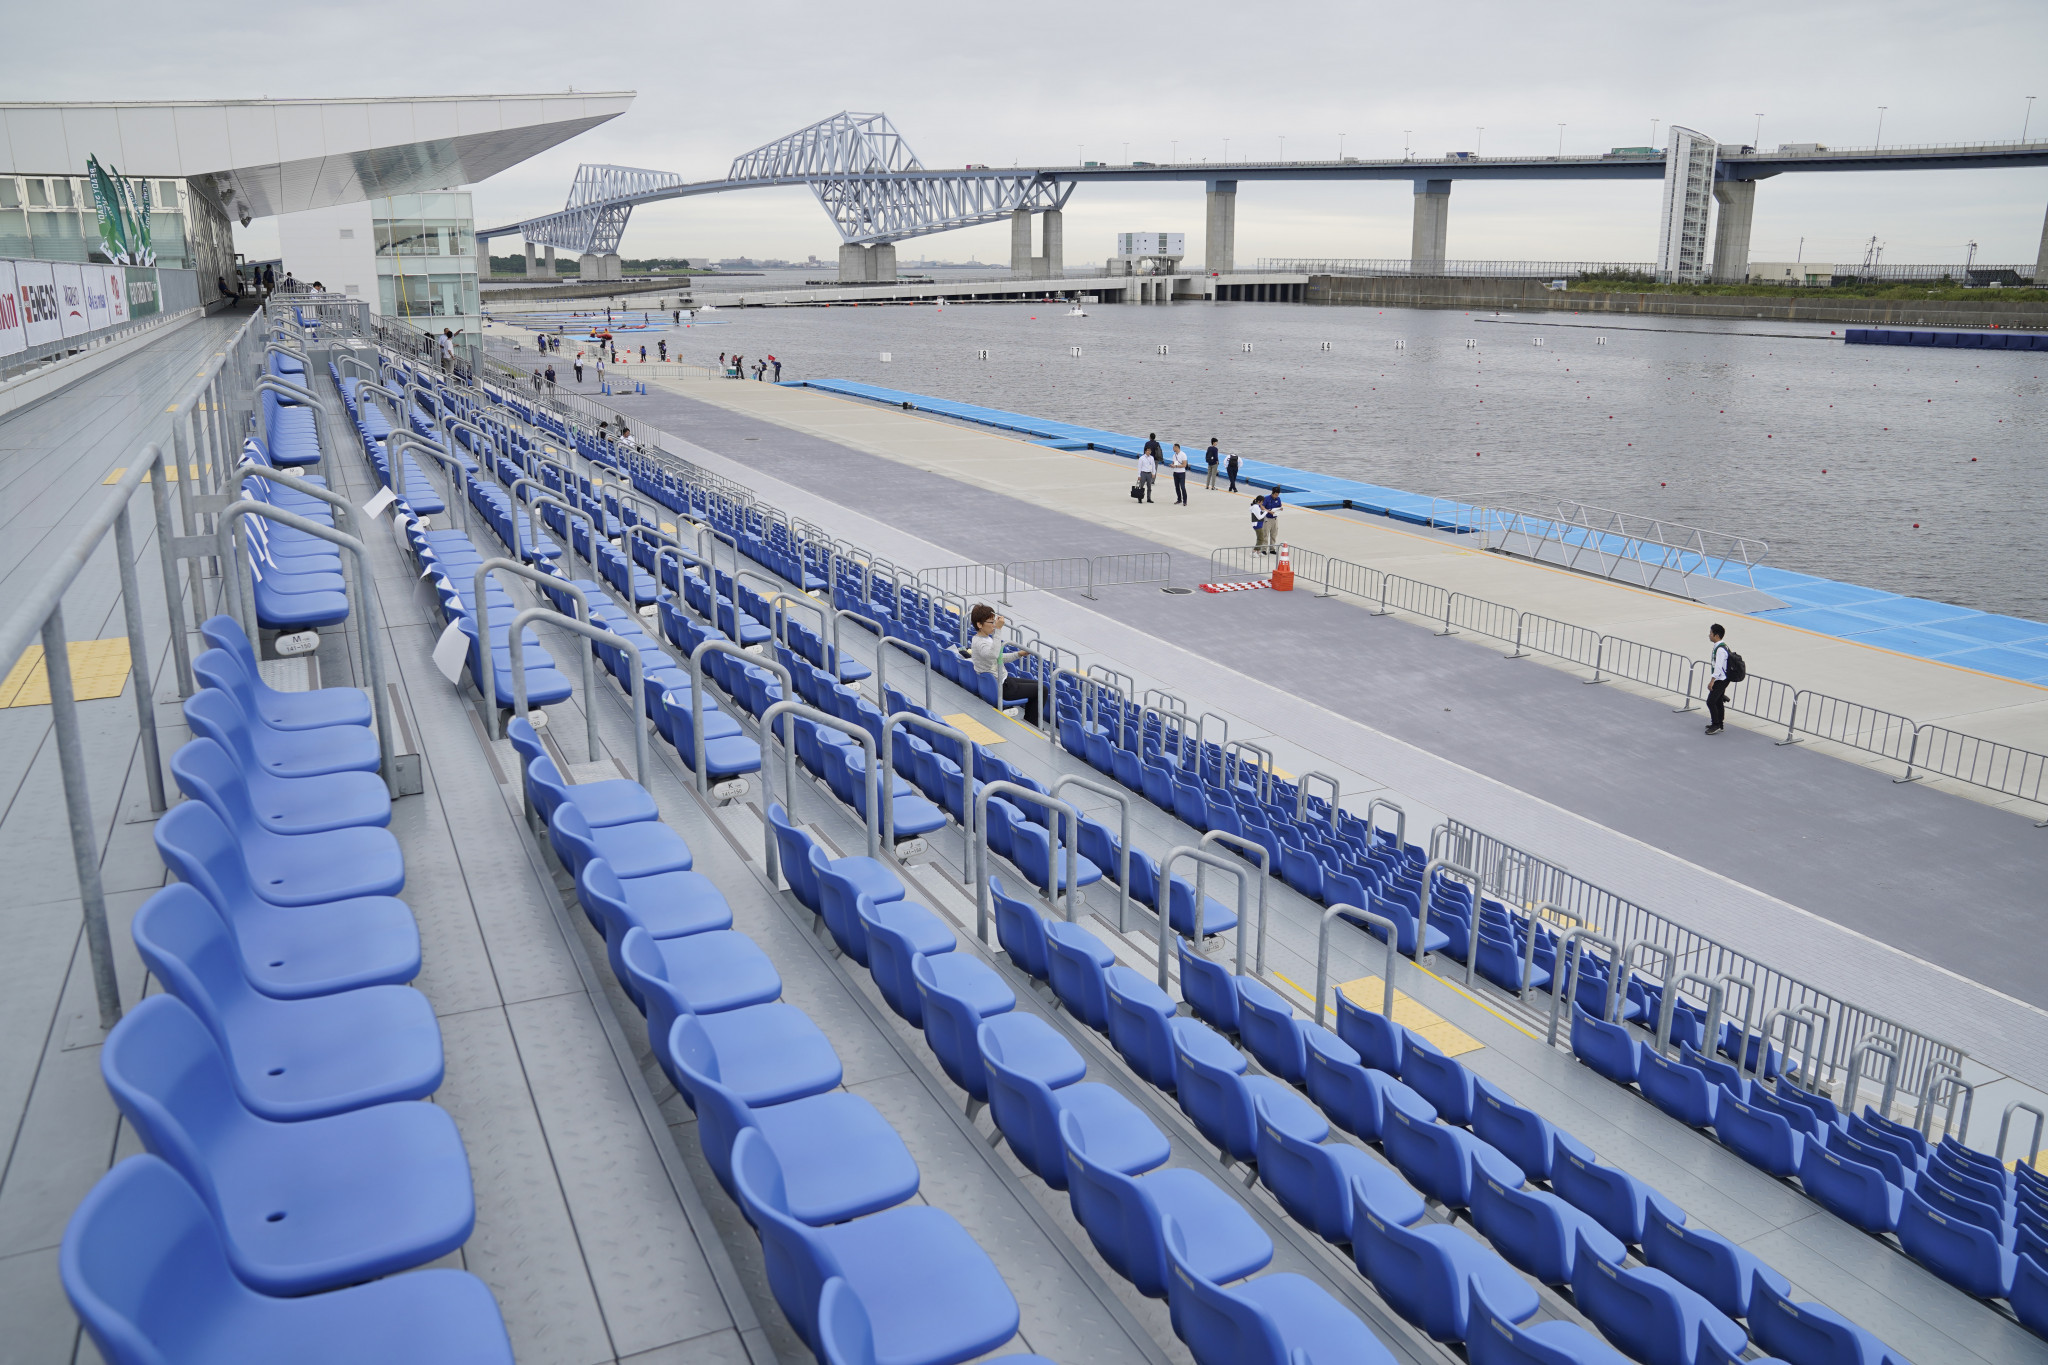 Olympic qualifiers will be hosted at Sea Forest Waterway, the venue that will be used for rowing and canoe events at Tokyo 2020 ©Getty Images